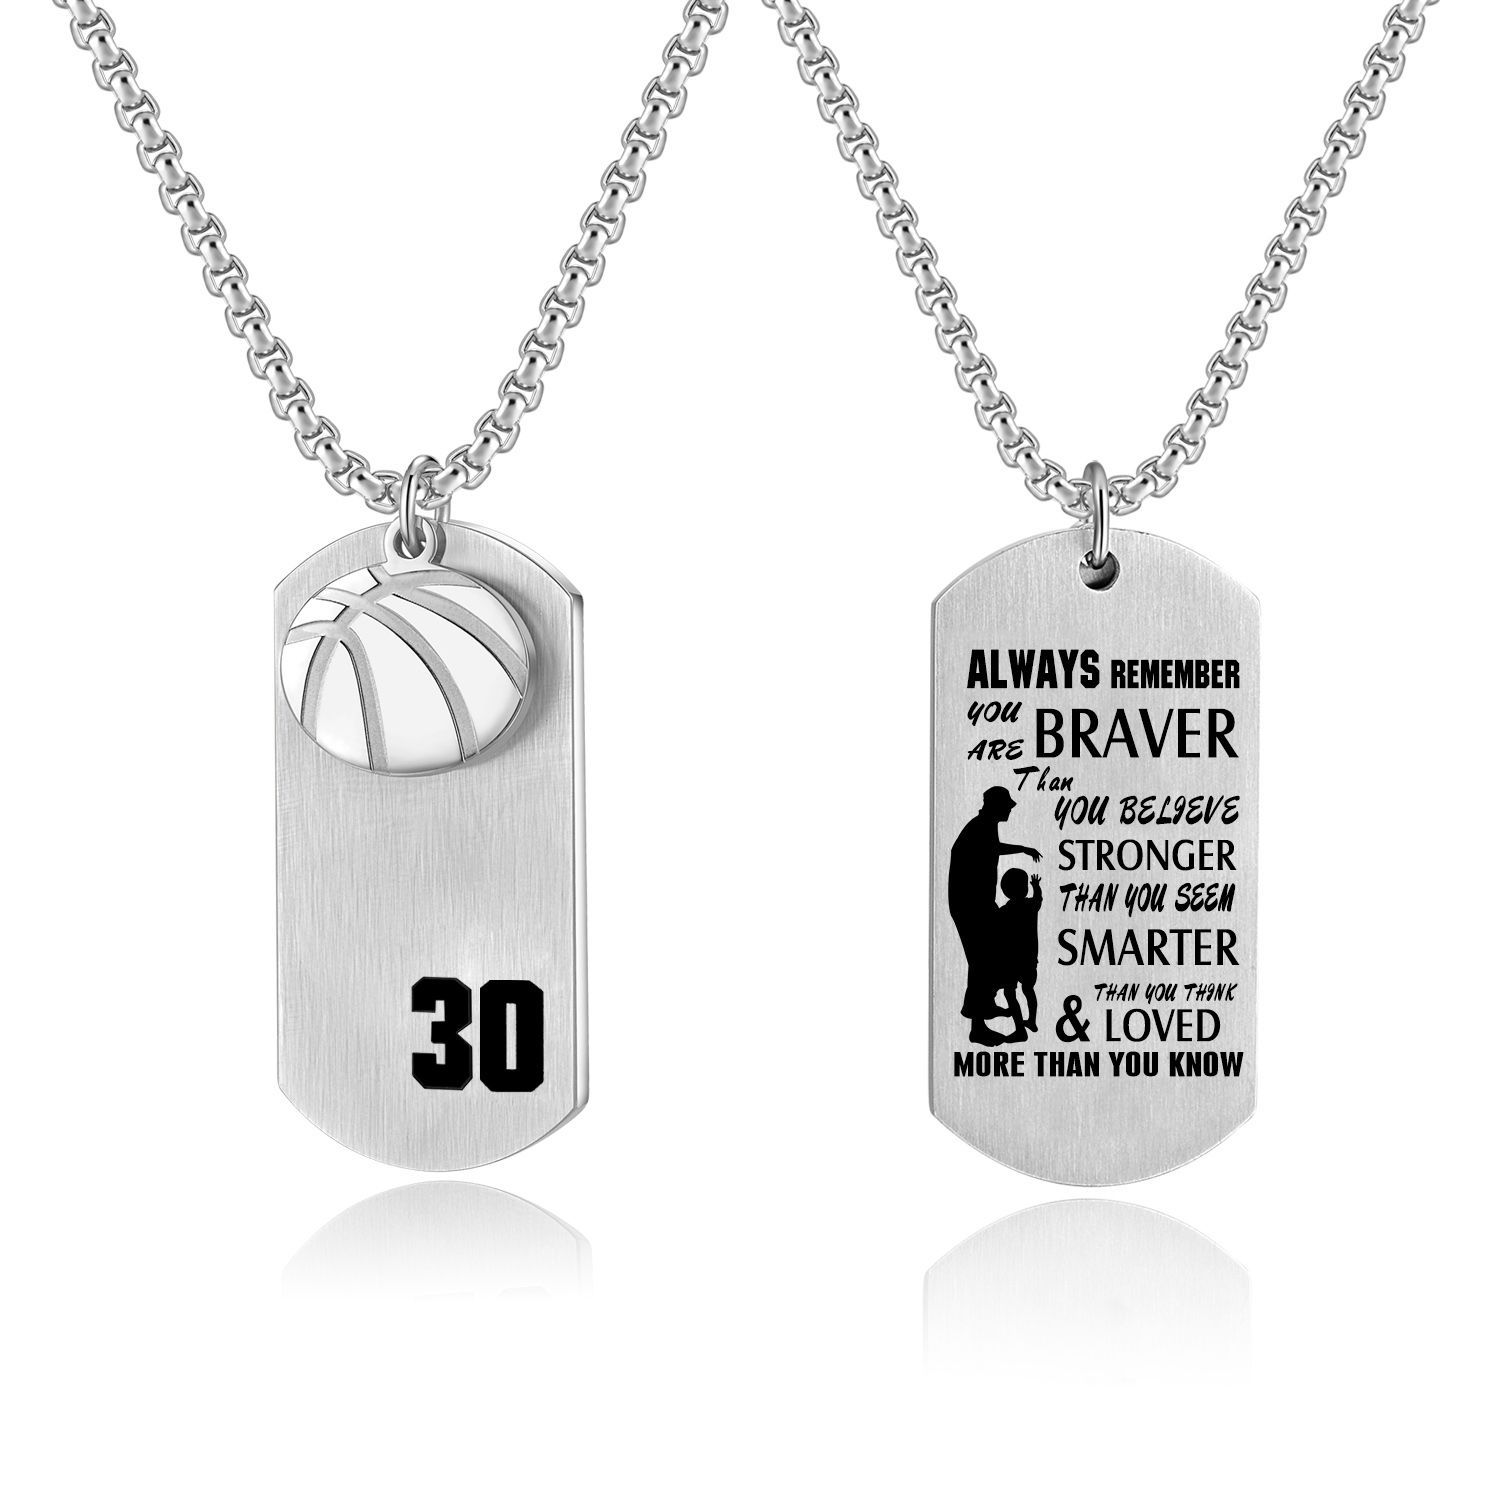 Father Mother Pendant To My Son Daughter dog tag necklace